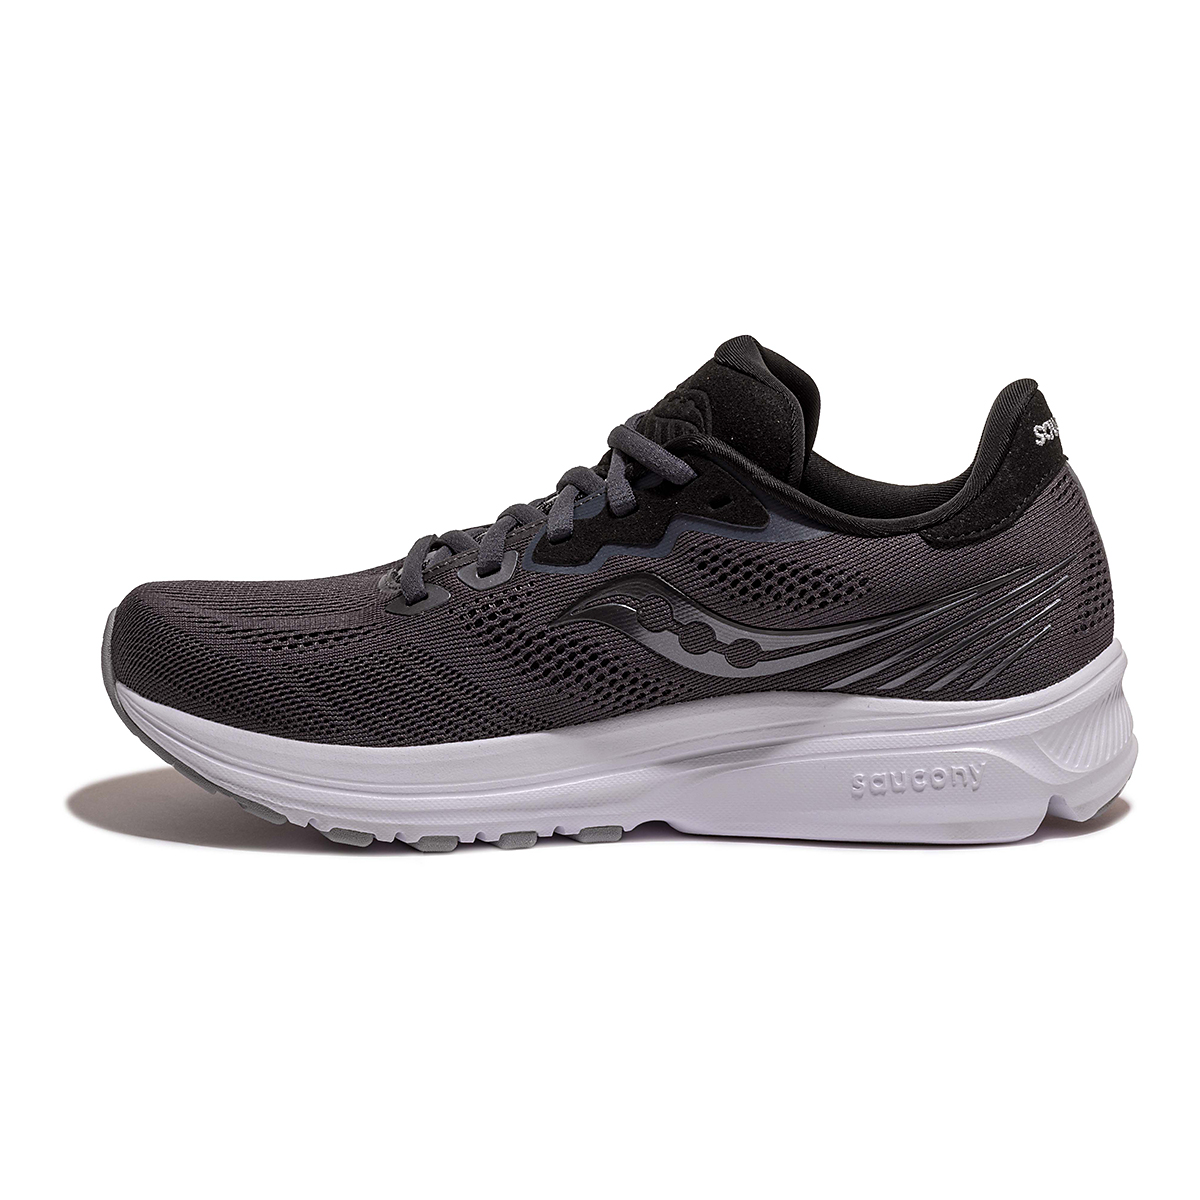 Women's Saucony Ride 14 Running Shoe - Color: Charcoal/Black - Size: 5 - Width: Wide, Charcoal/Black, large, image 2